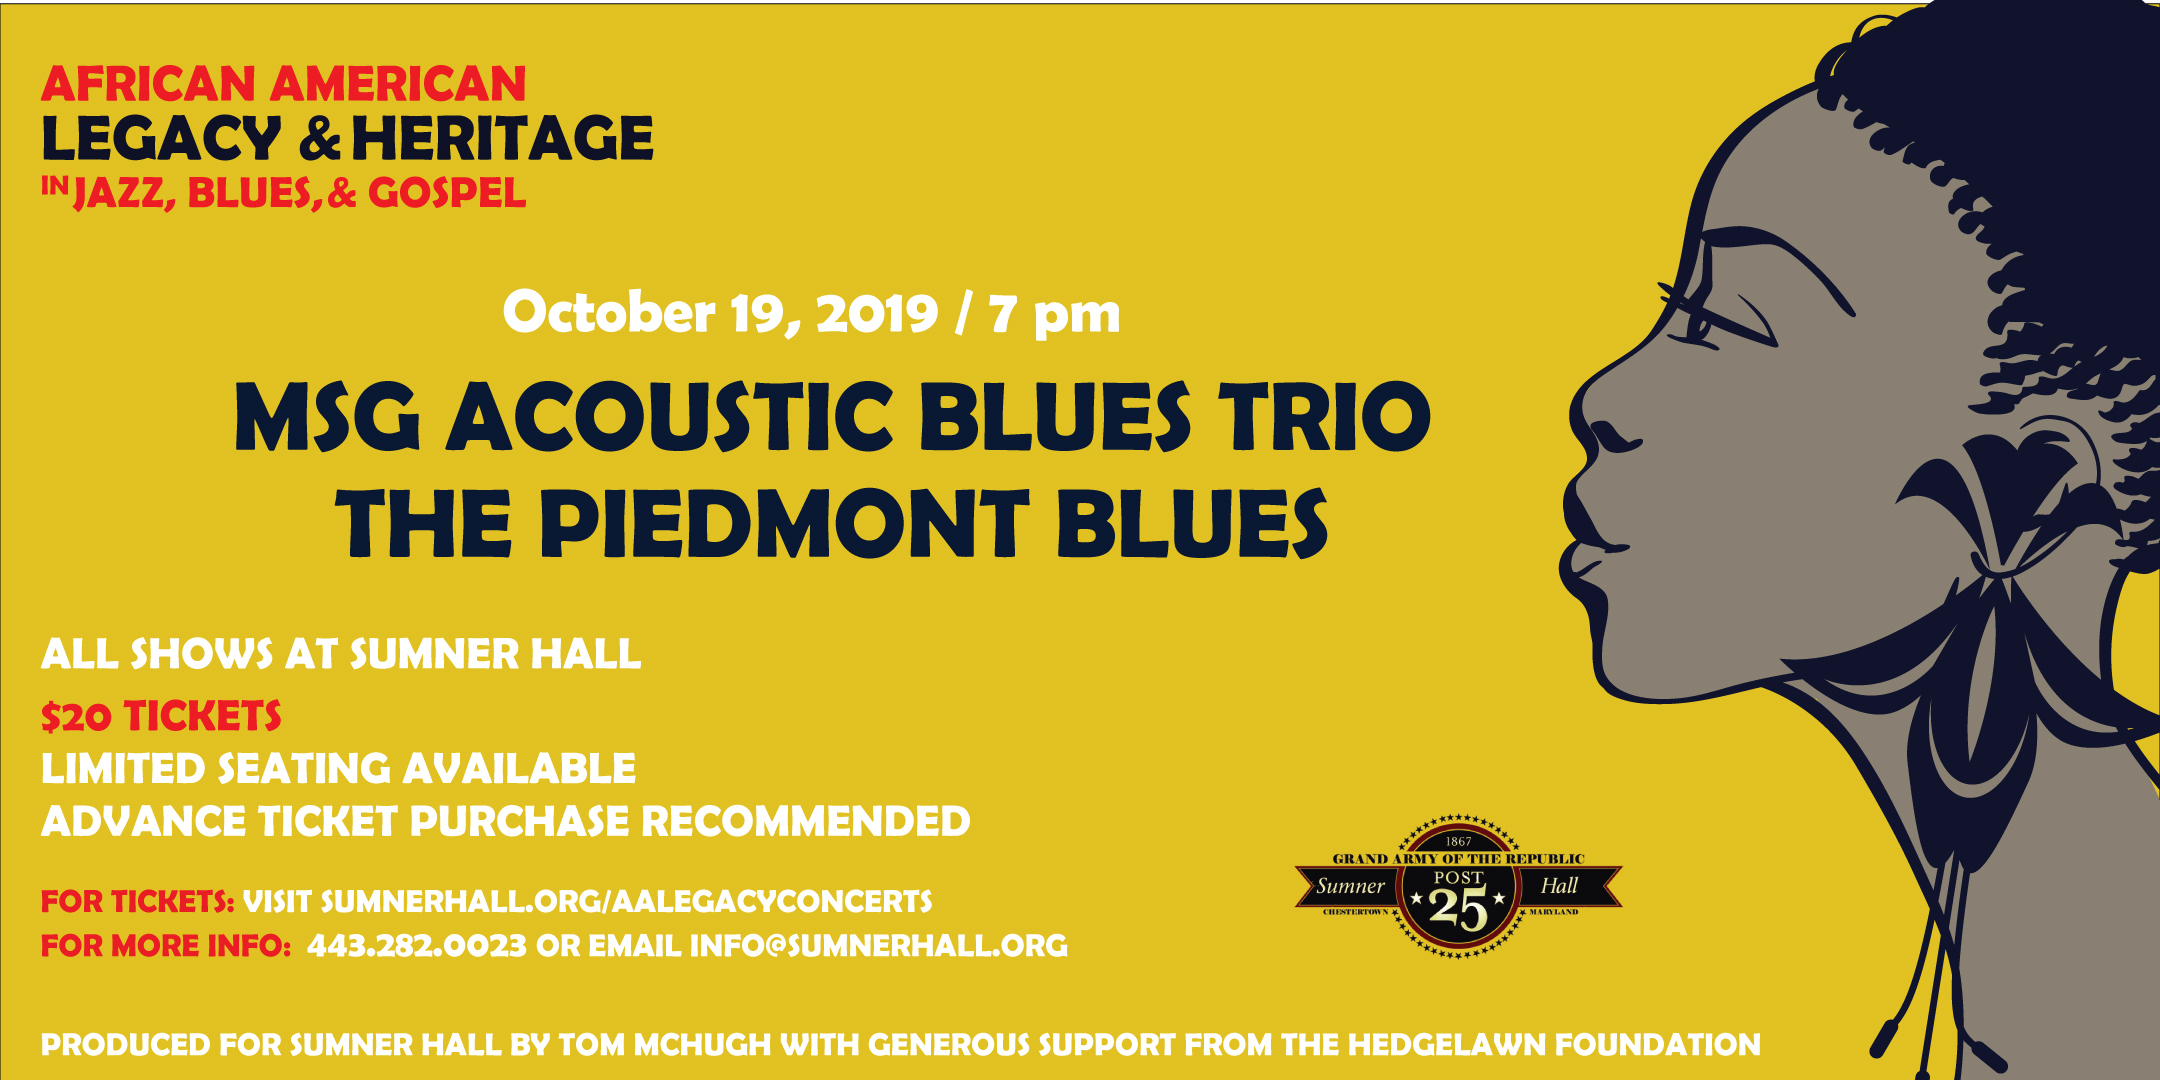 MSG Acoustic Blues Trio The Piedmont Blues